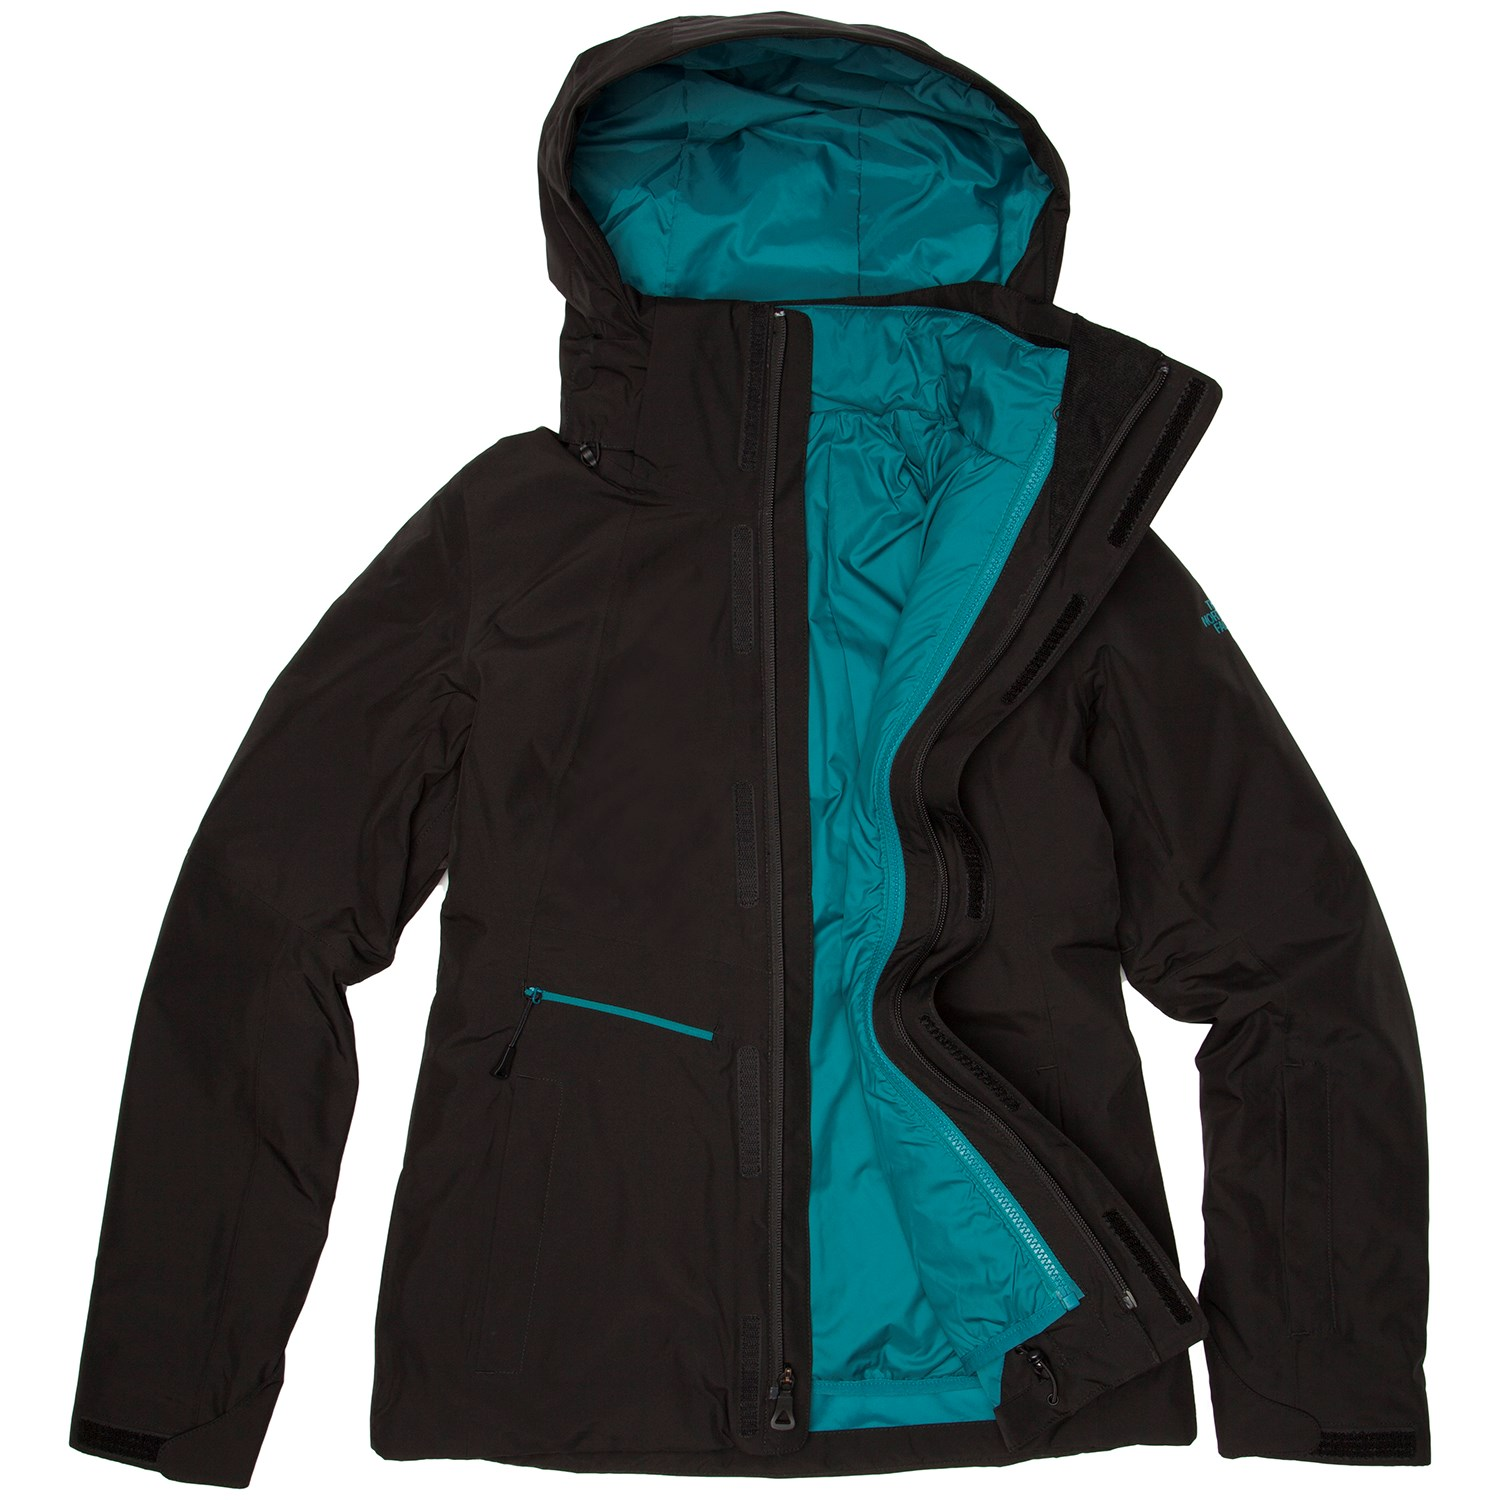 721be199db The North Face Garner Triclimate® Jacket - Women s